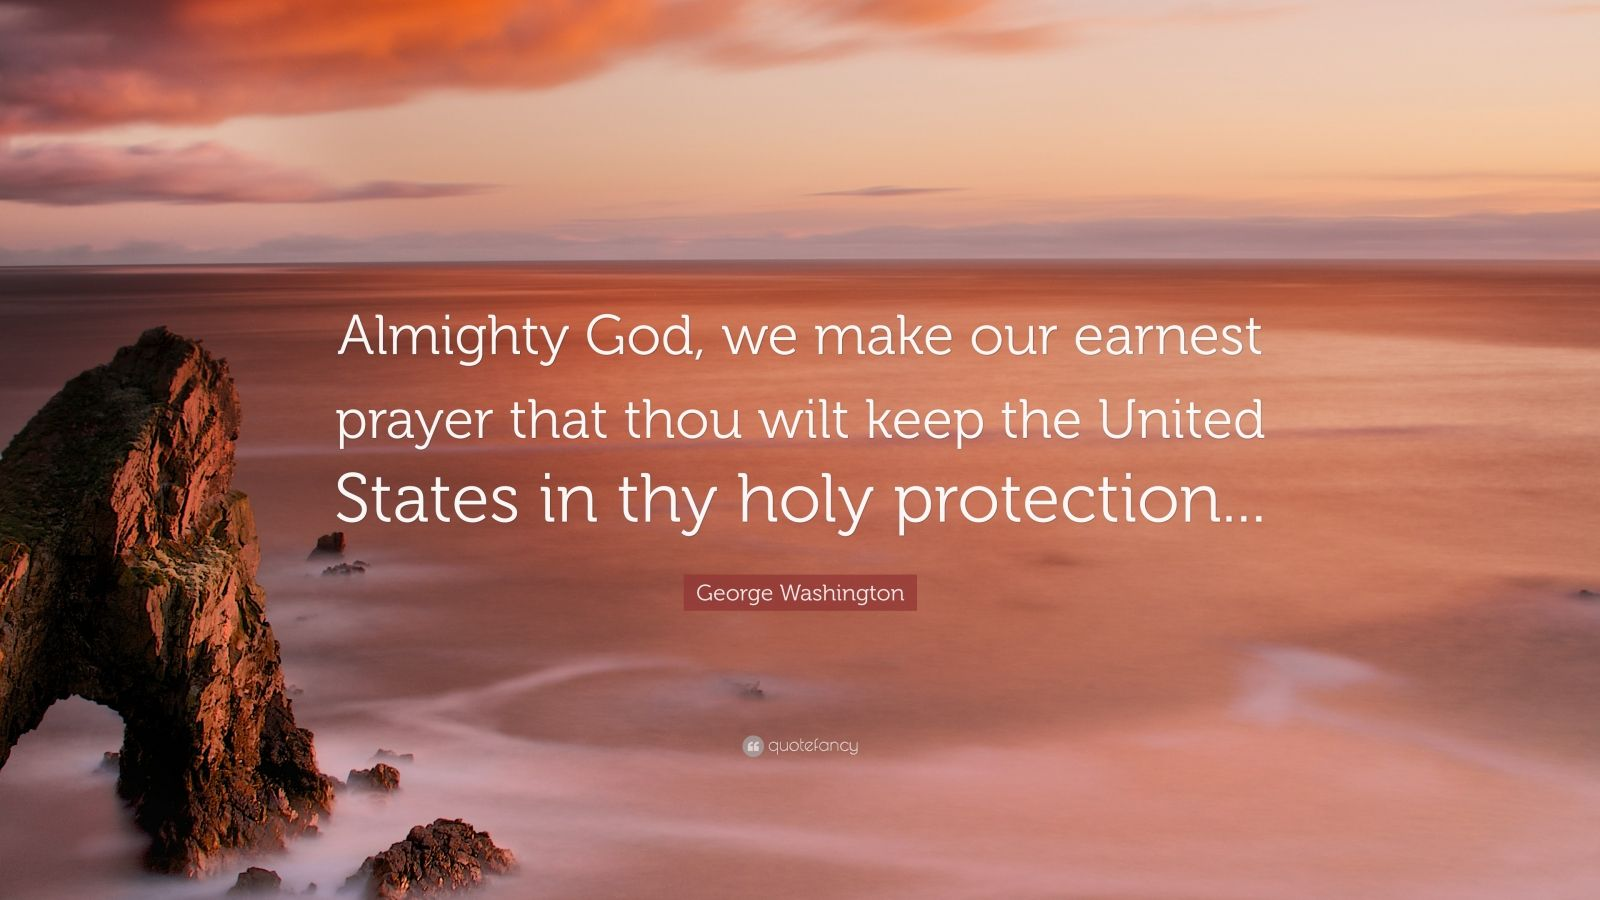 """George Washington Quote: """"Almighty God, we make our earnest prayer that thou wilt keep the United States in thy holy protection..."""""""